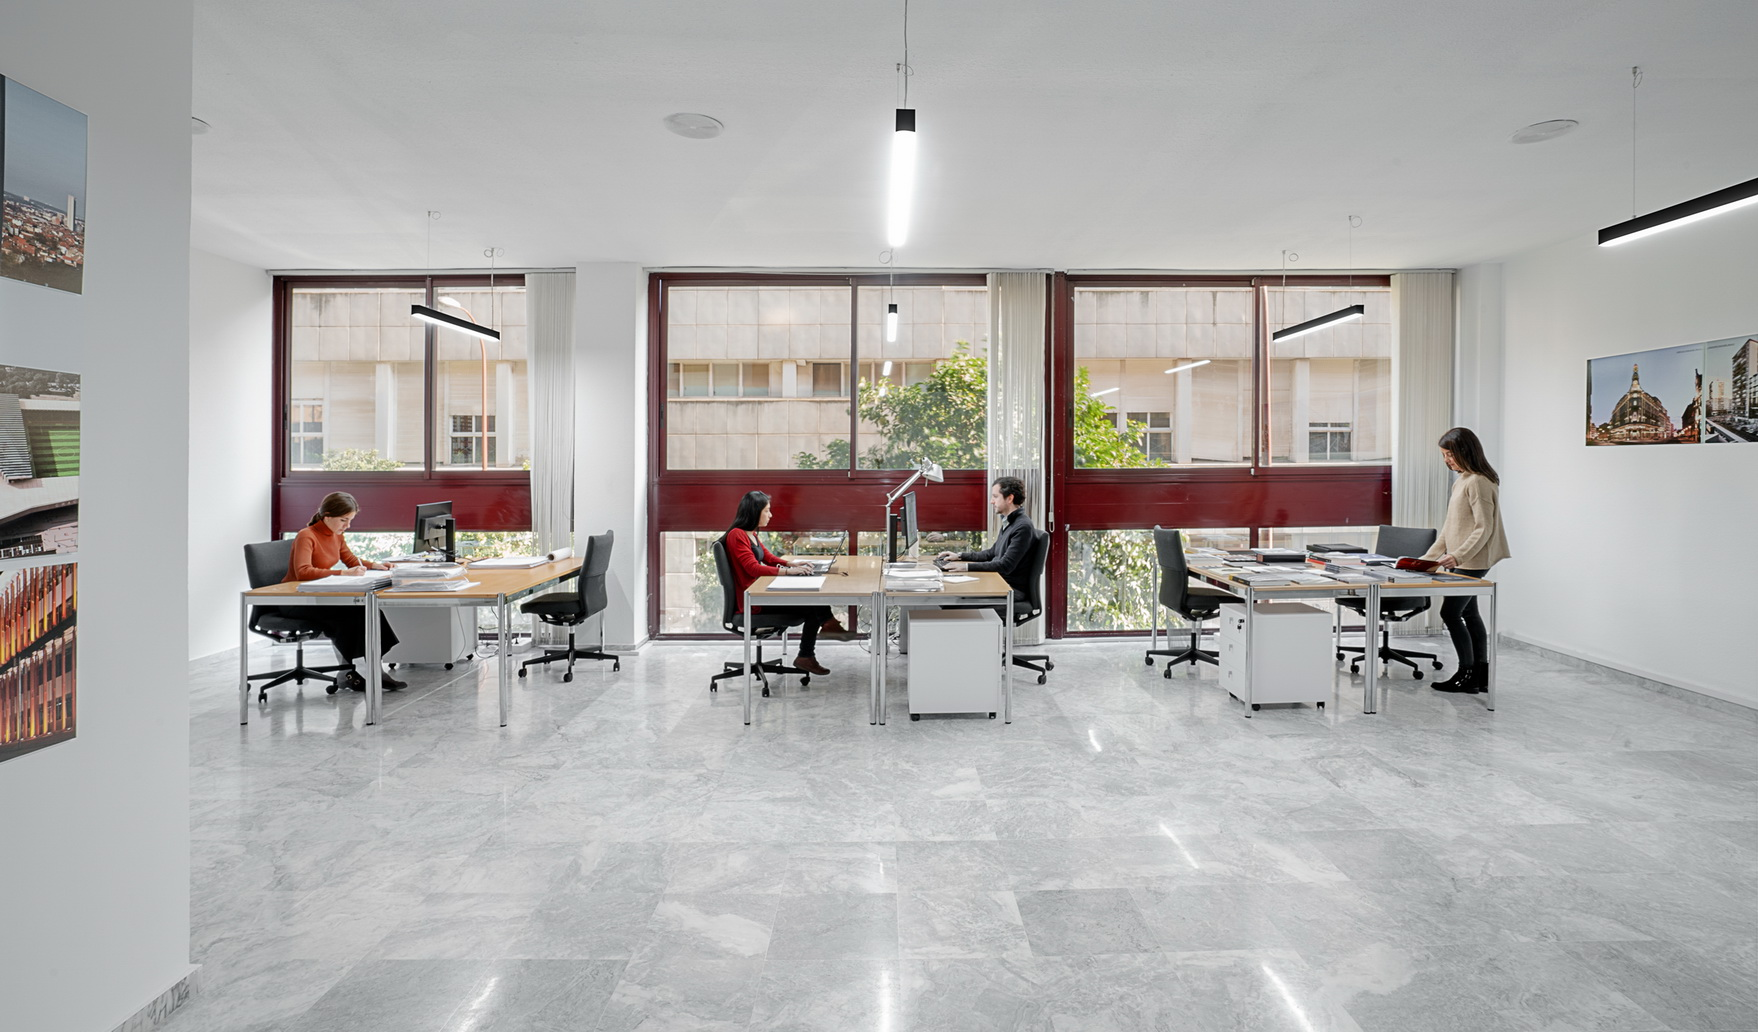 Estudio Lamela Opens Office in Seville